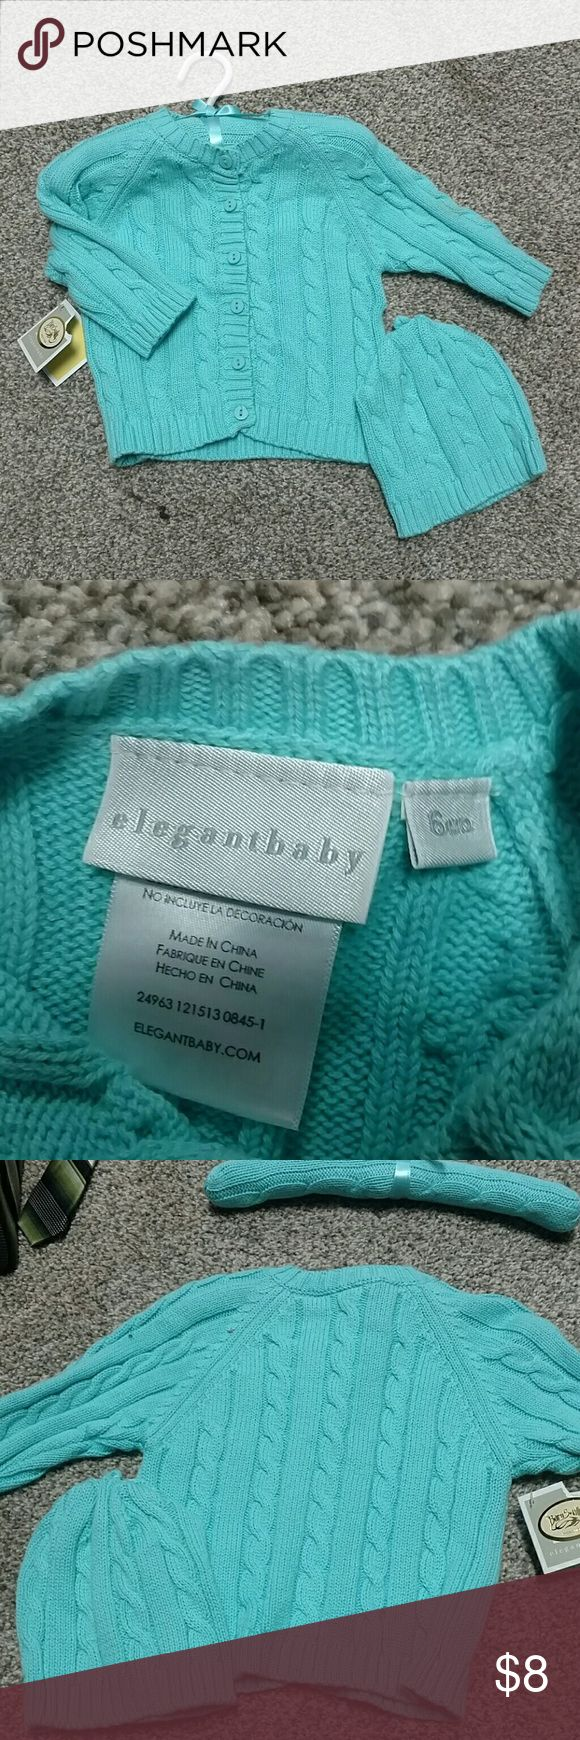 Baby Girl Turquoise Cardigan and Hat NWT, baby cardigan and matching hat elegant baby  Shirts & Tops Sweaters